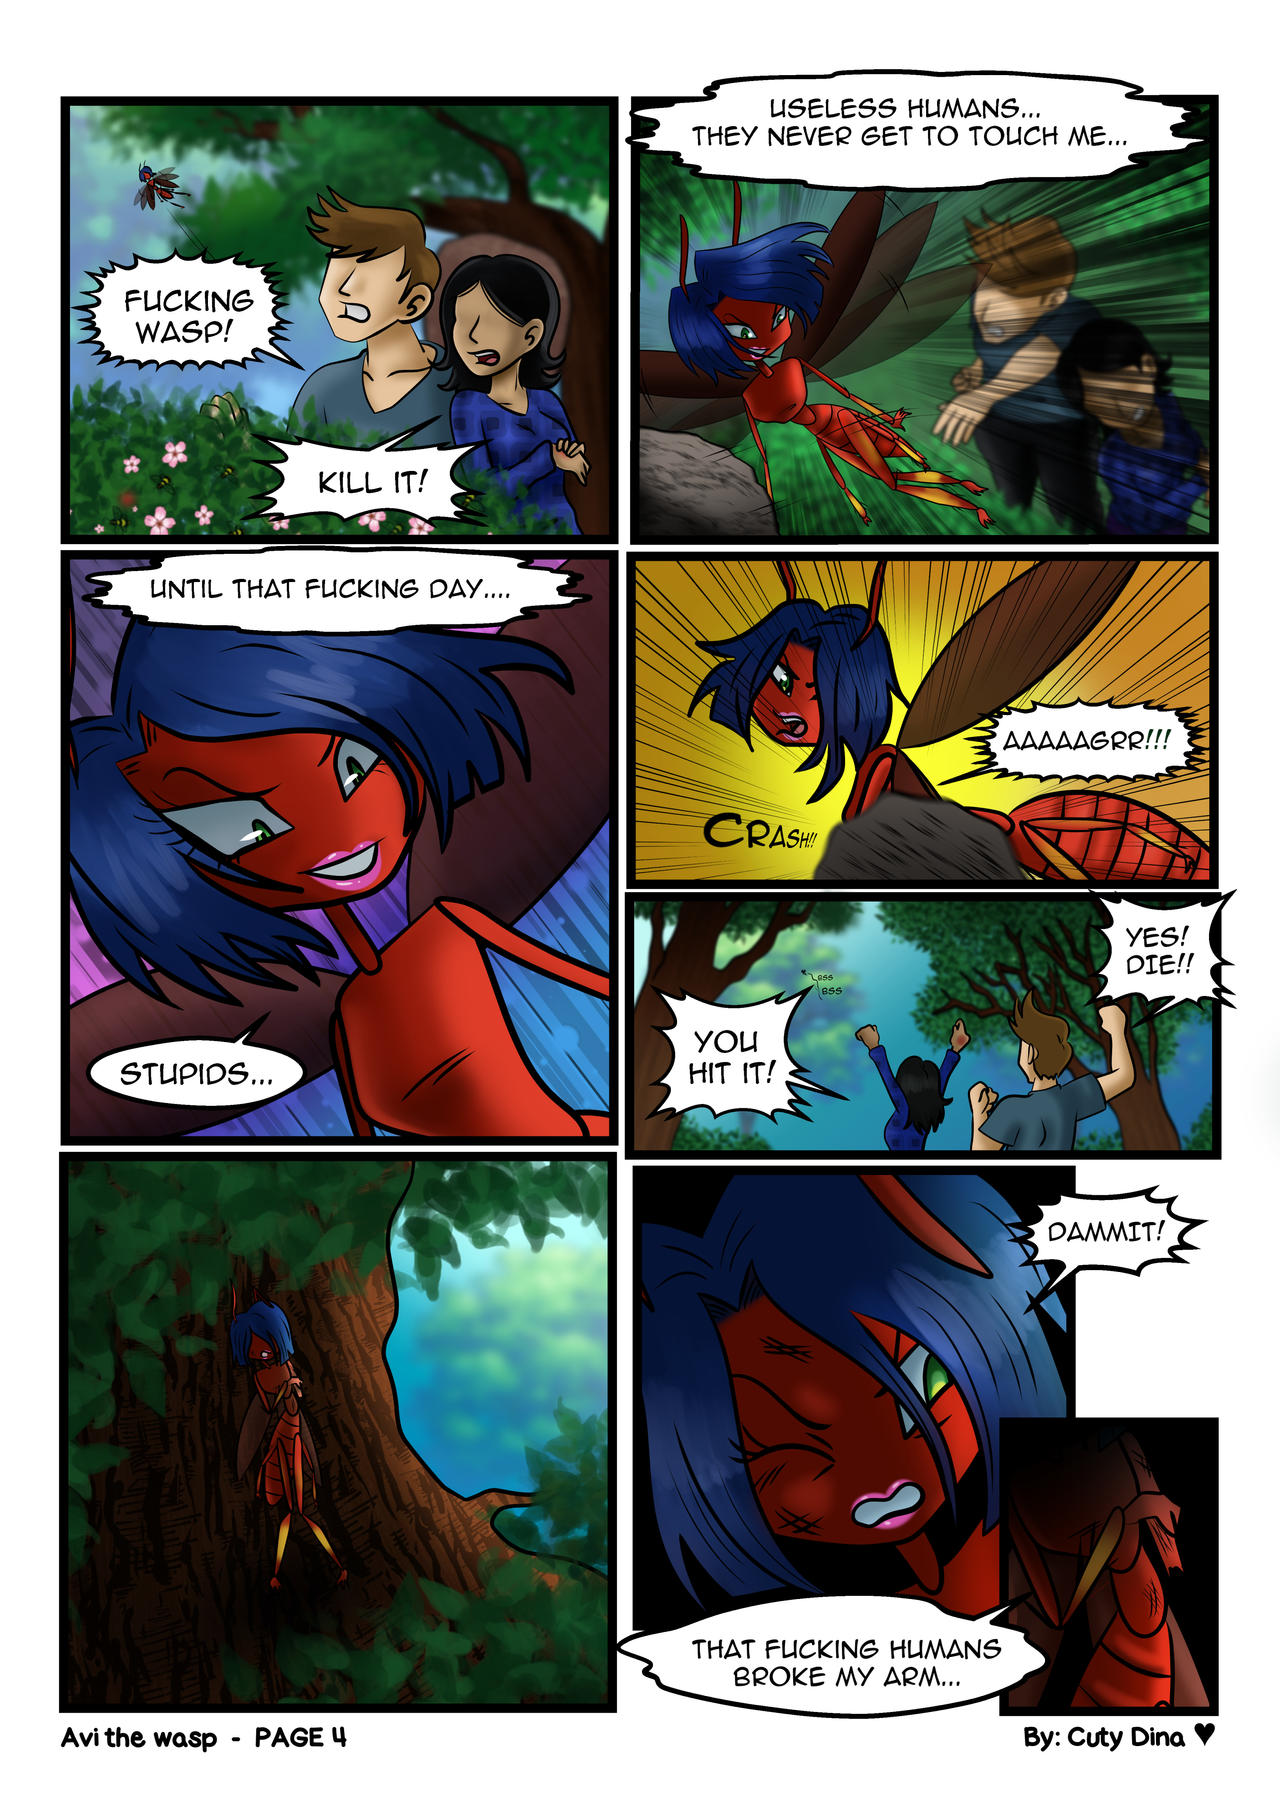 Avi the wasp - Page04